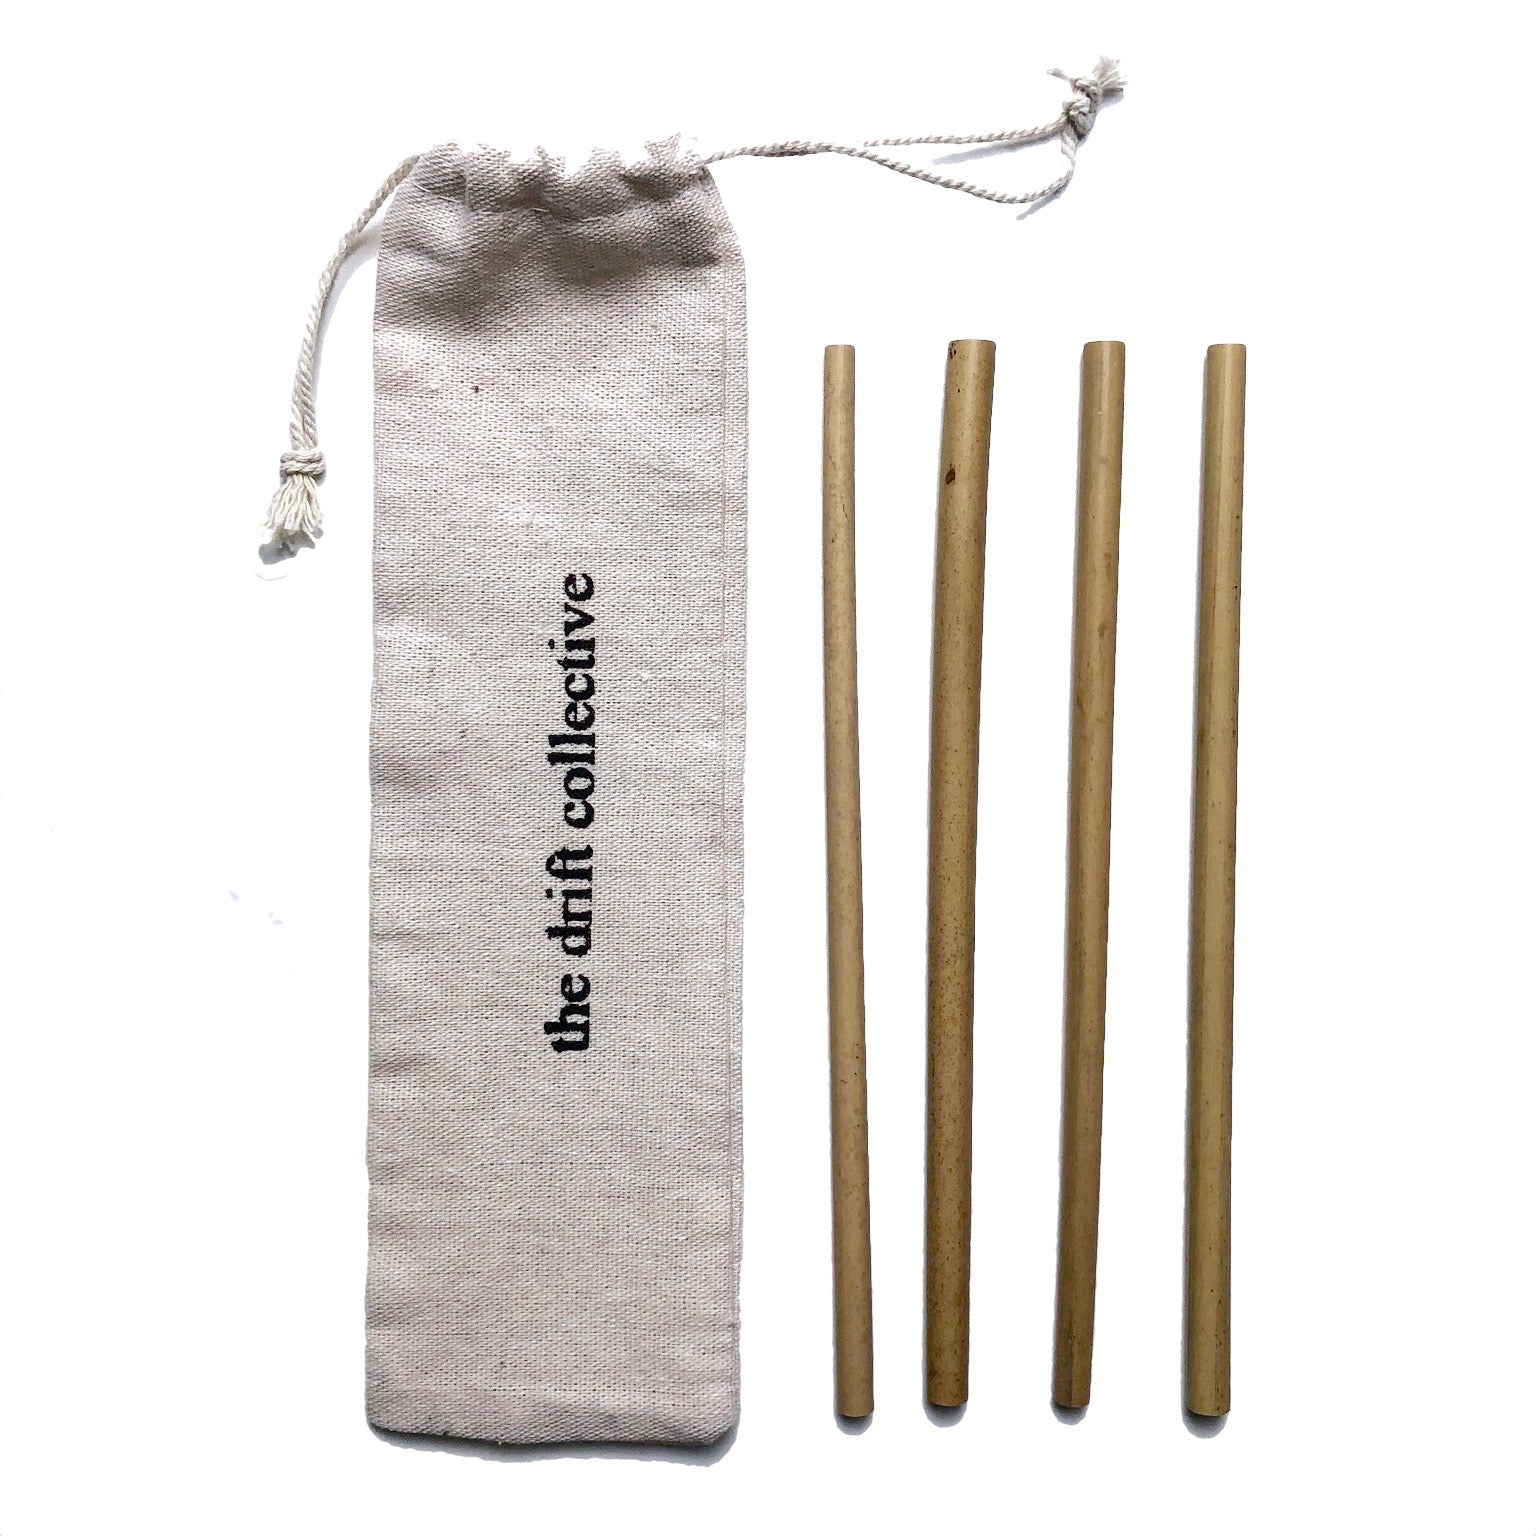 reusable straws. bamboo straw set. stainless steel straw set